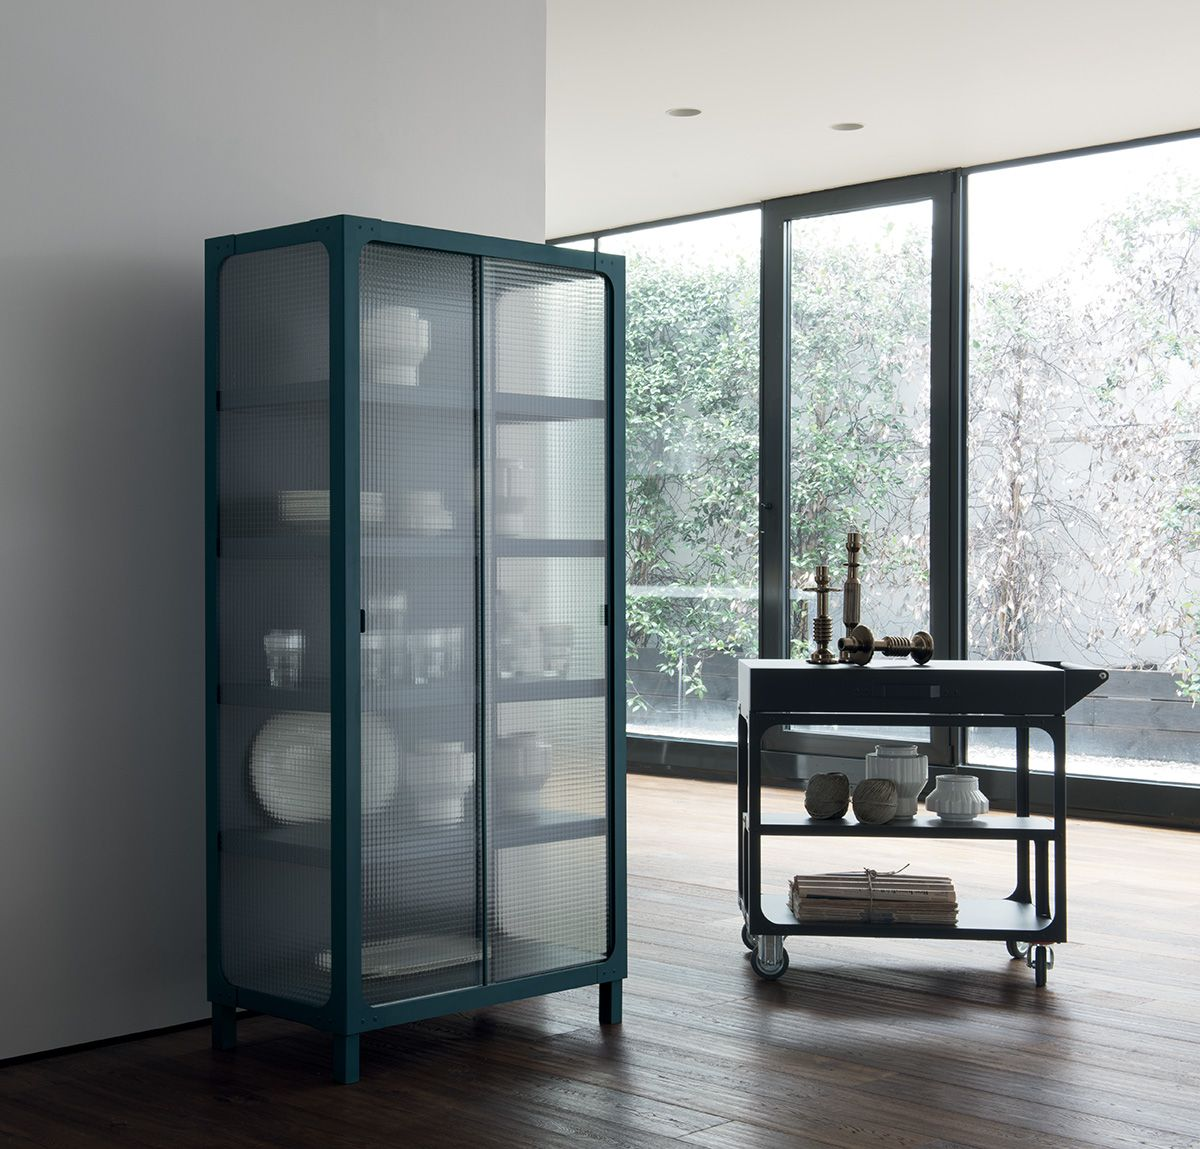 Contamination is the keyword in a version with a wire glass door in ...